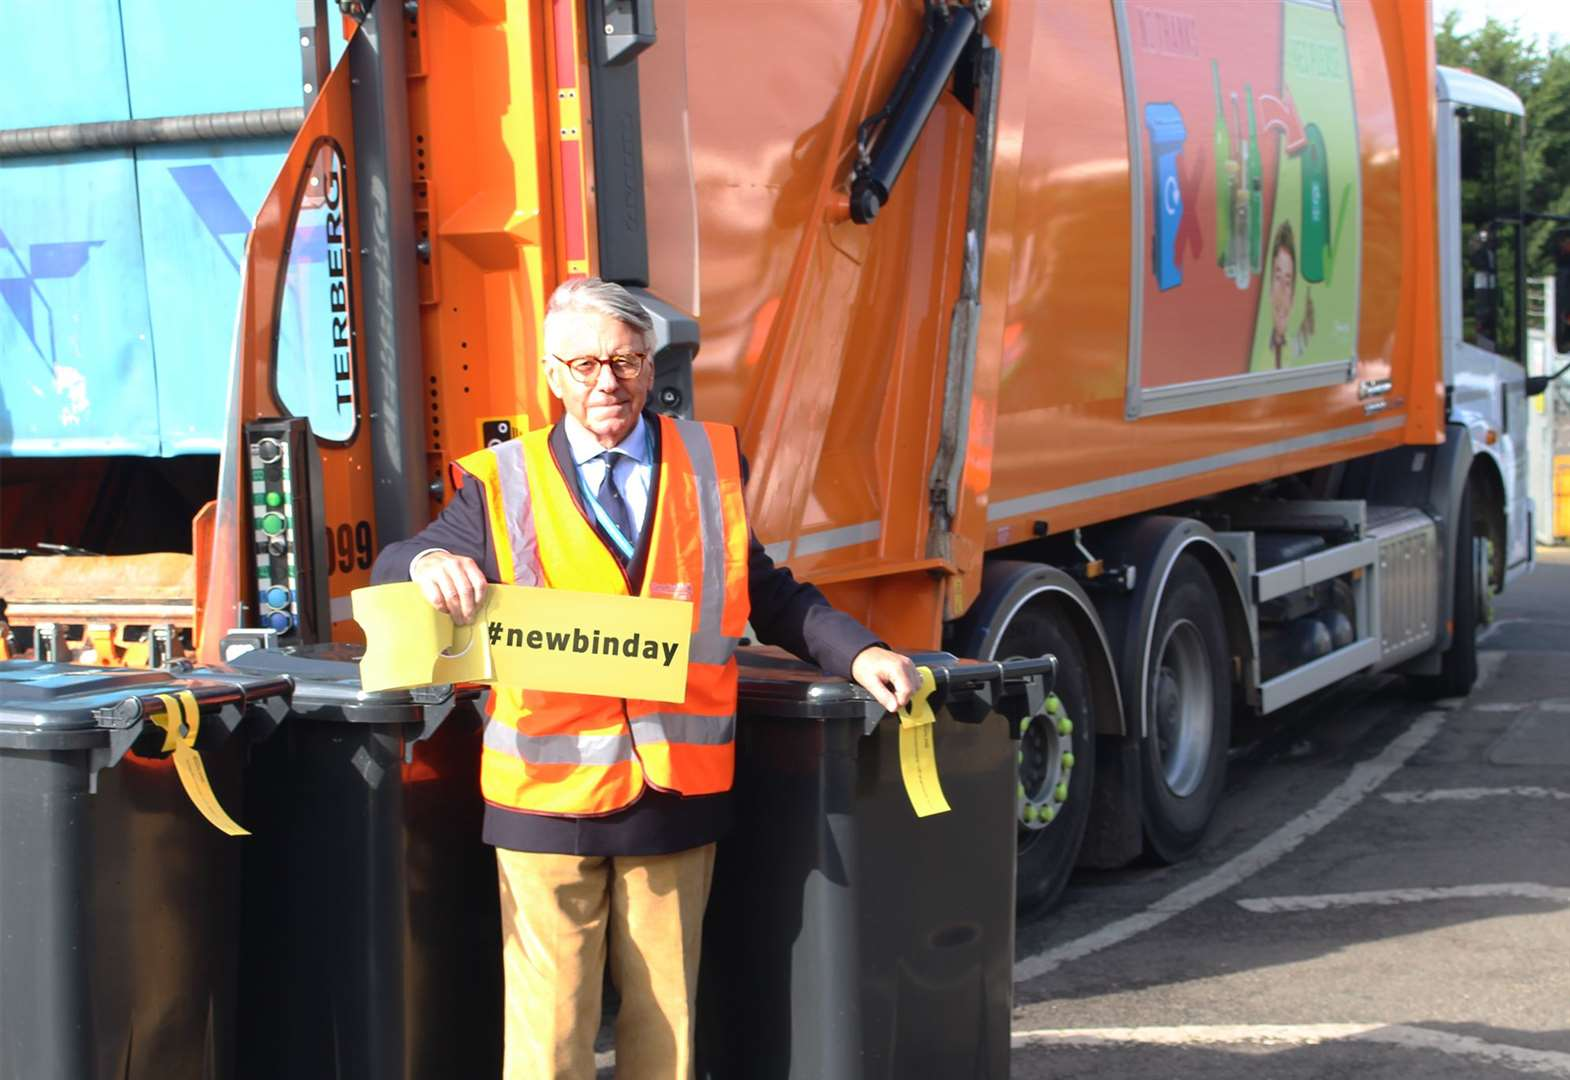 Bin collection days are set to be changed